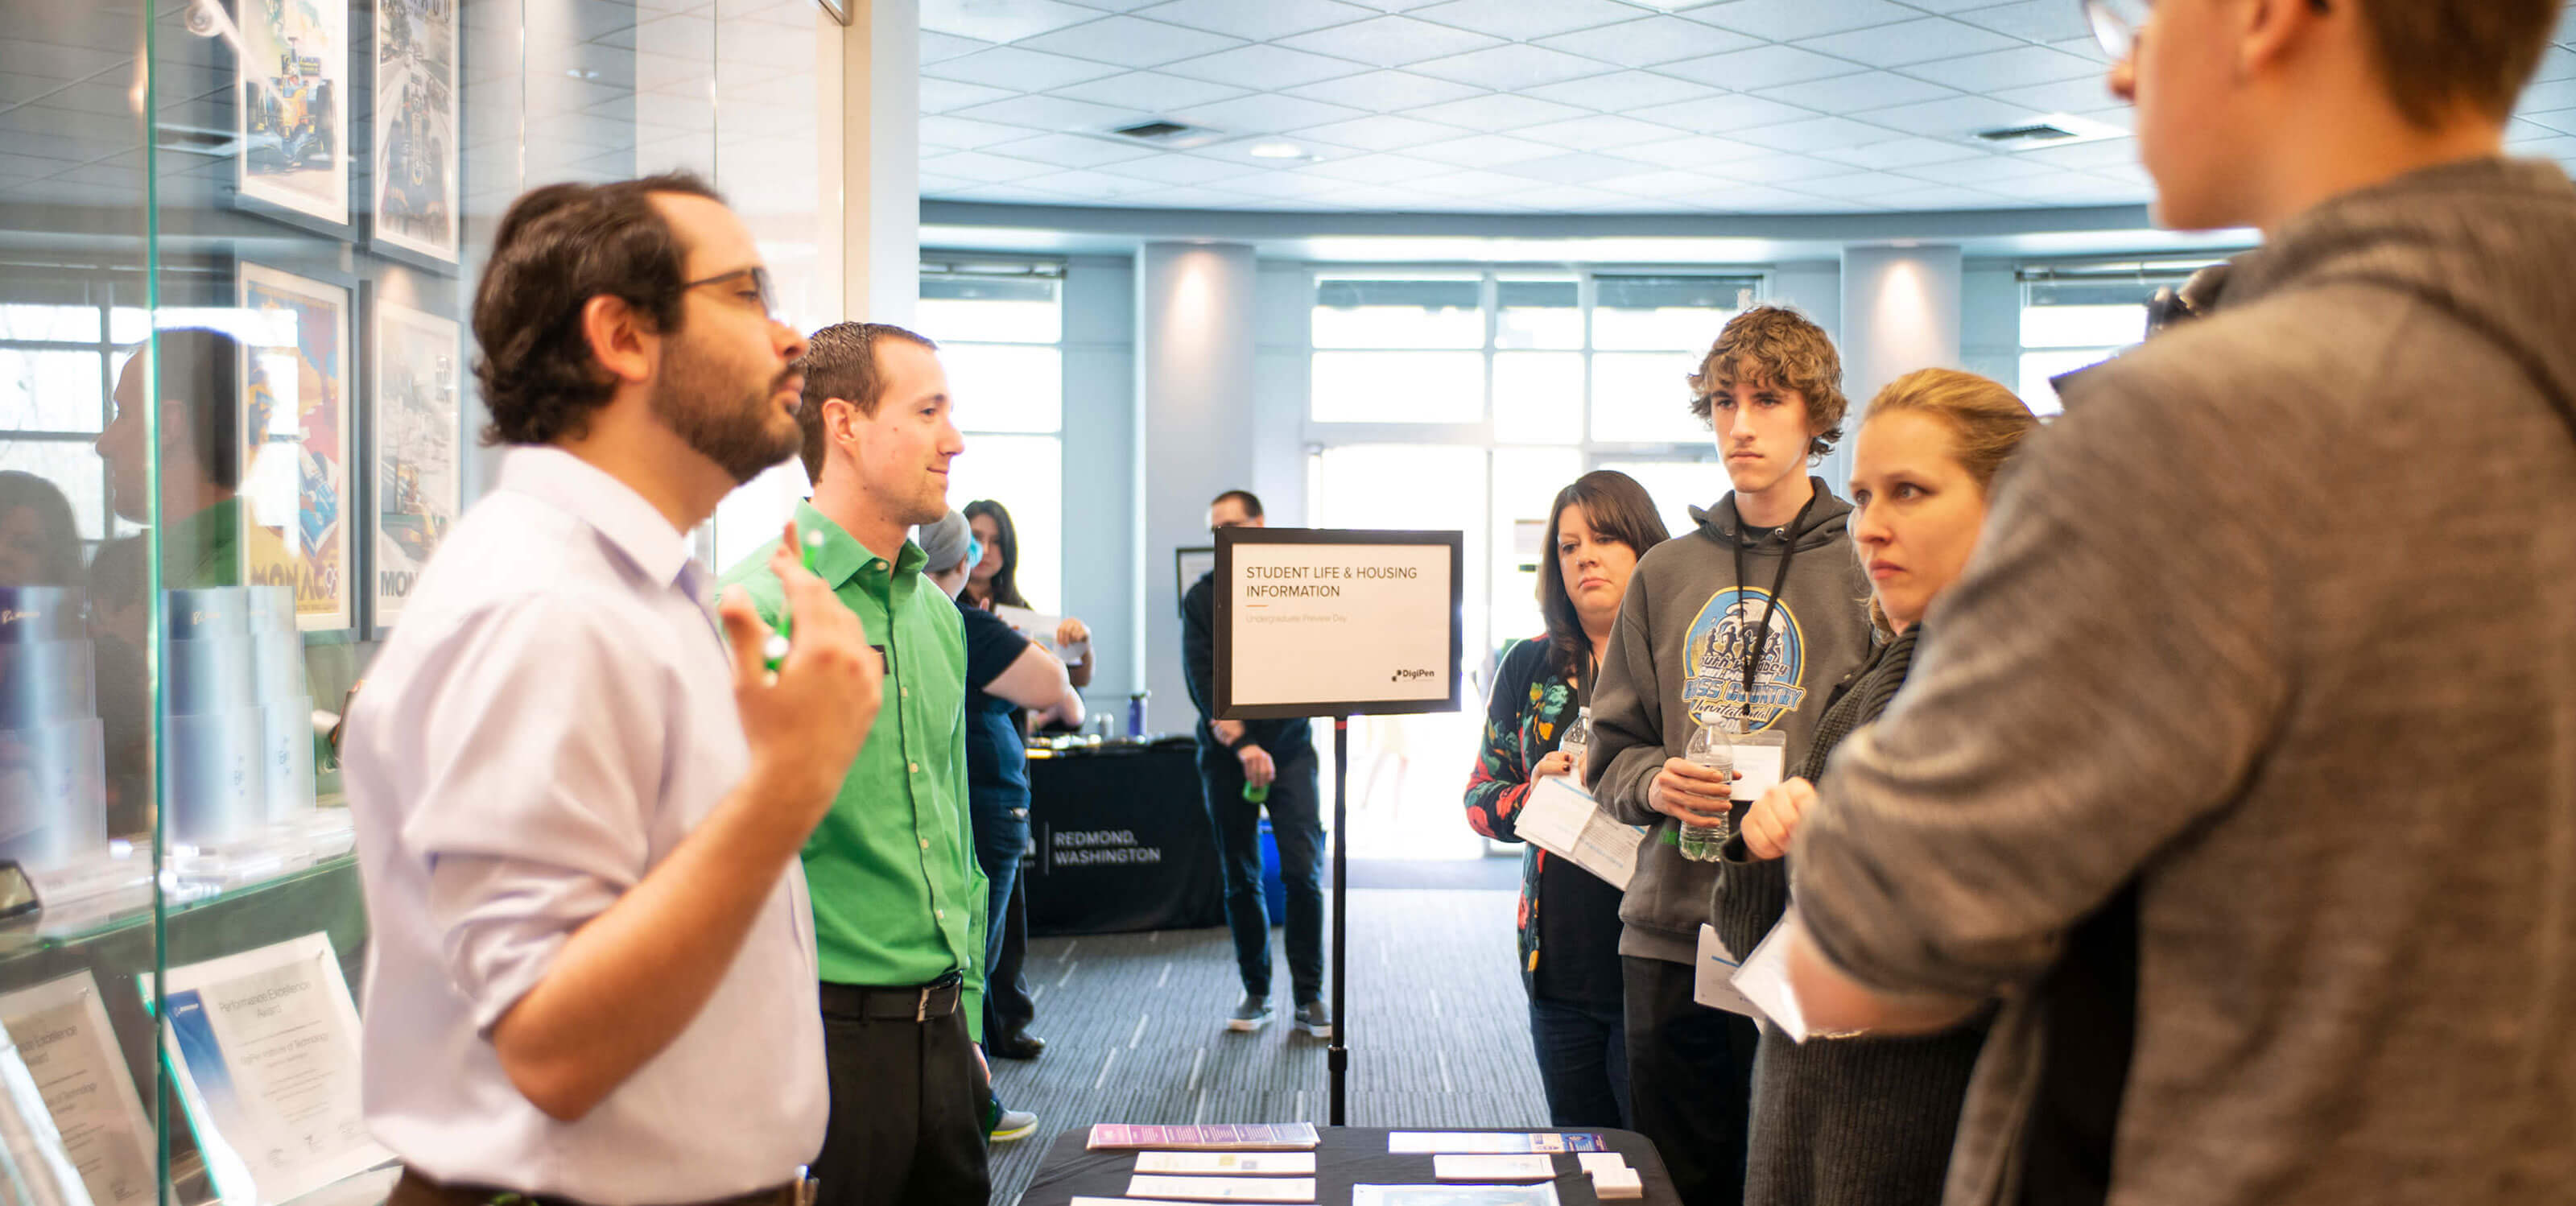 A DigiPen staff member speaks with prospective students and parents at a Preview Day event